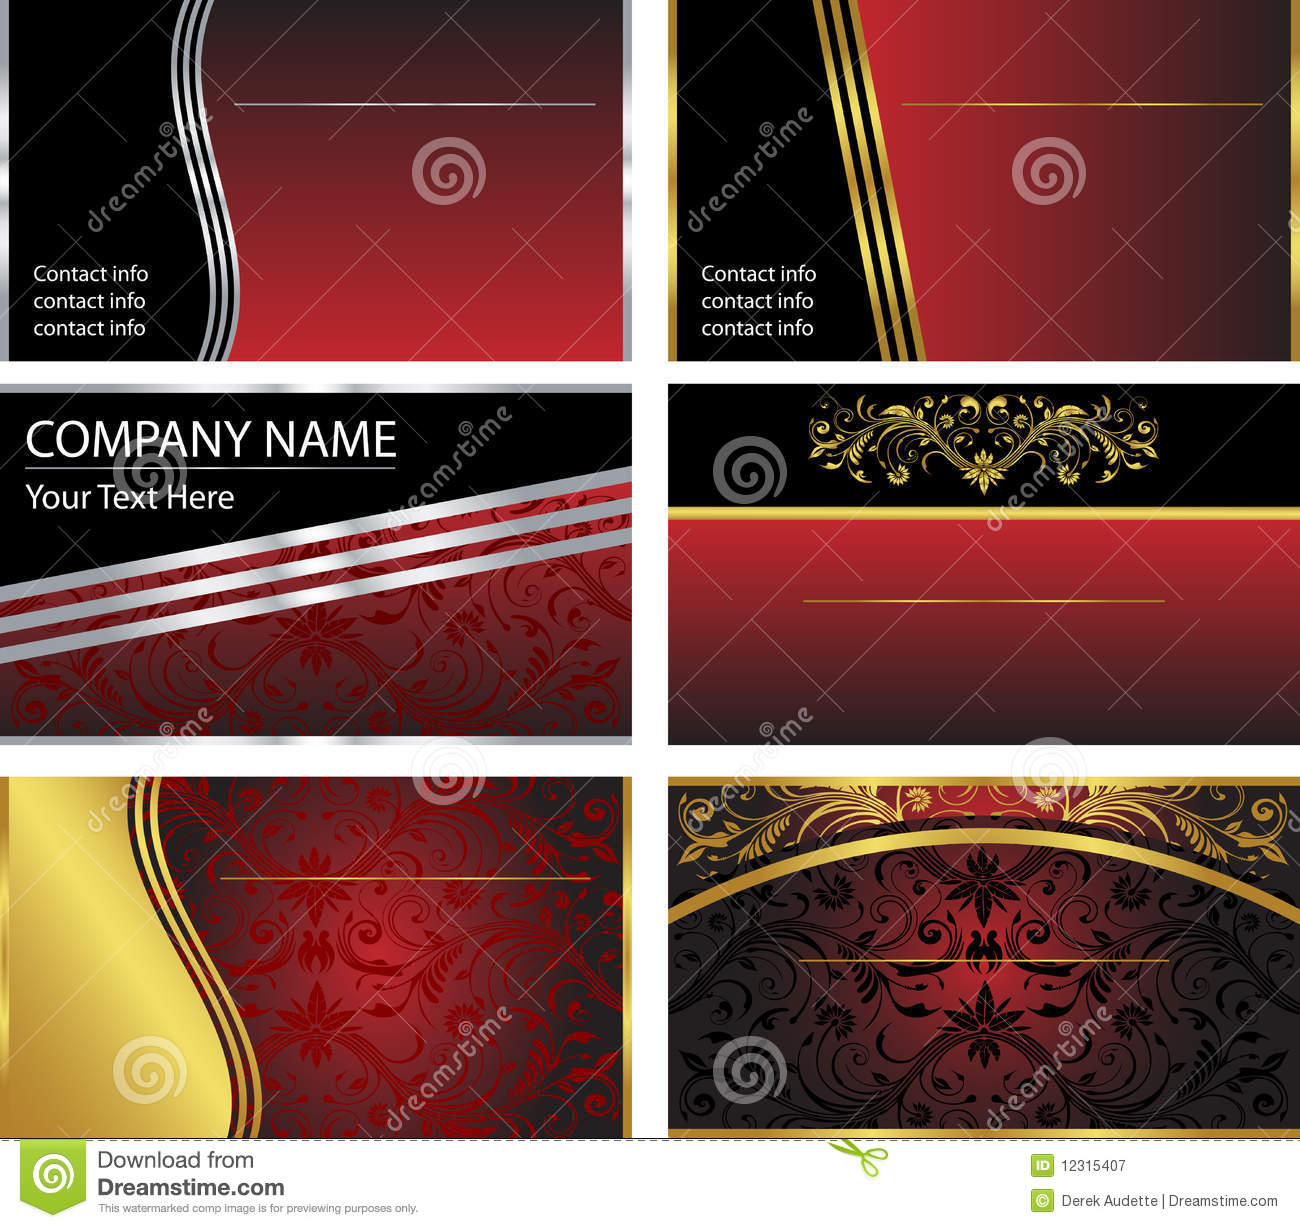 Six vector business card templates stock vector illustration of six vector business card templates flashek Images